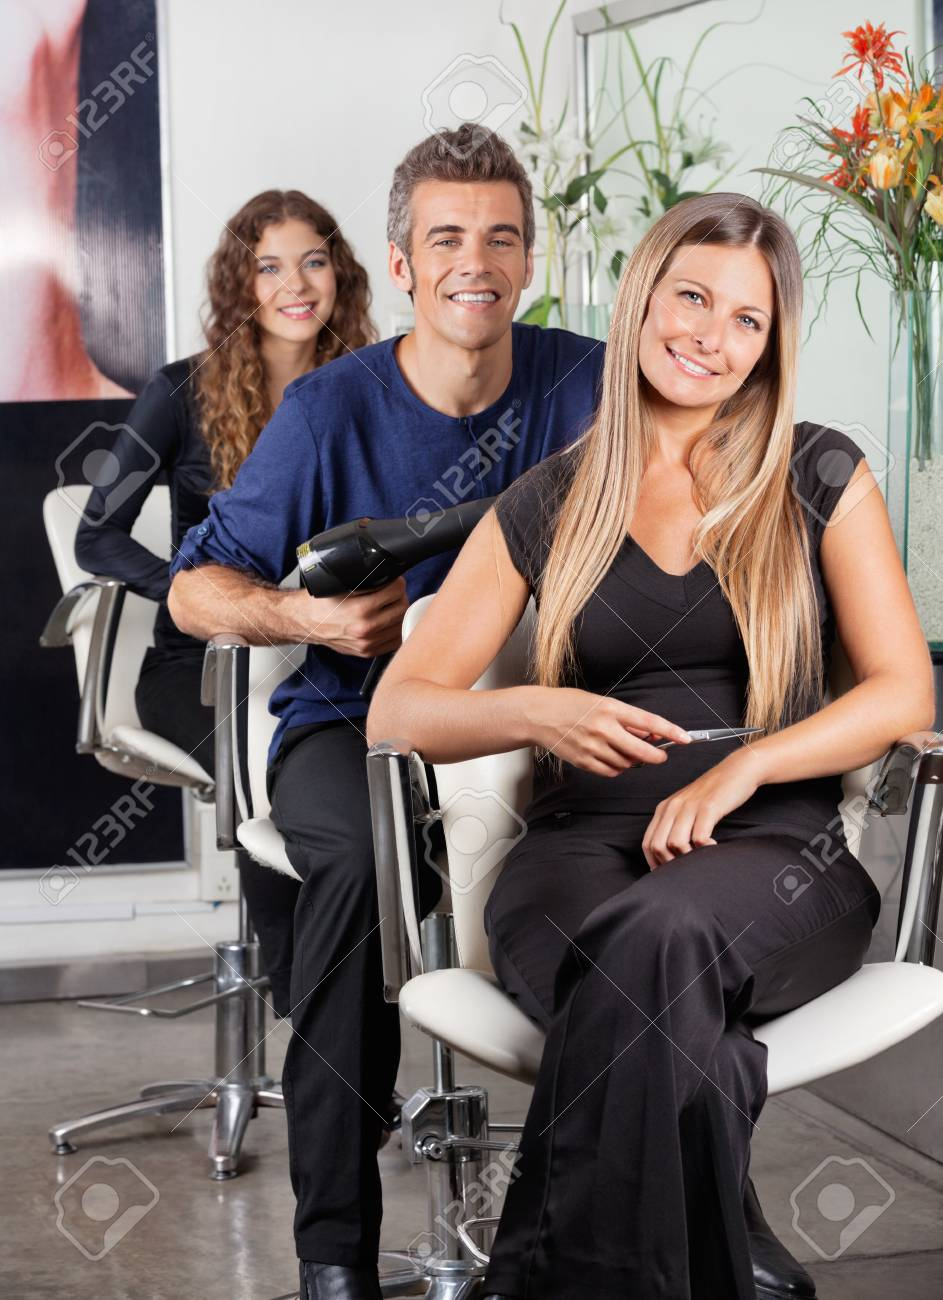 Confident Team Of Hairstylists At Beauty Parlor Stock Photo - 18068551